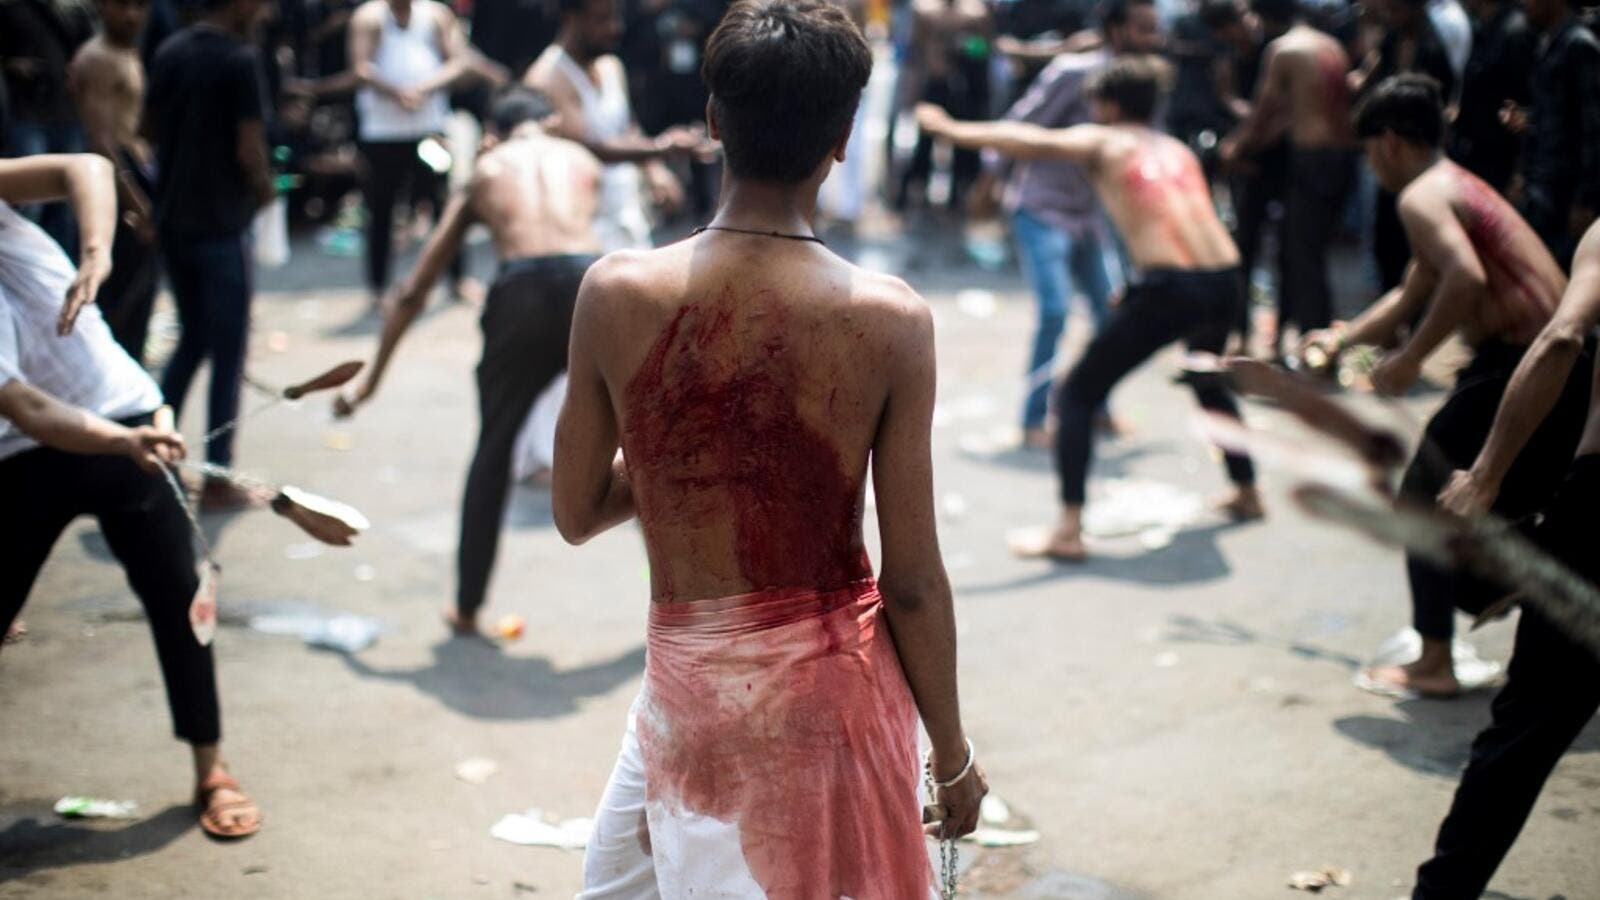 Shiite Muslim mourners flagellate themselves during a procession on the tenth day of Muharram which marks the day of Ashura, in New Delhi on September 10, 2019. (AFP/ File Photo)